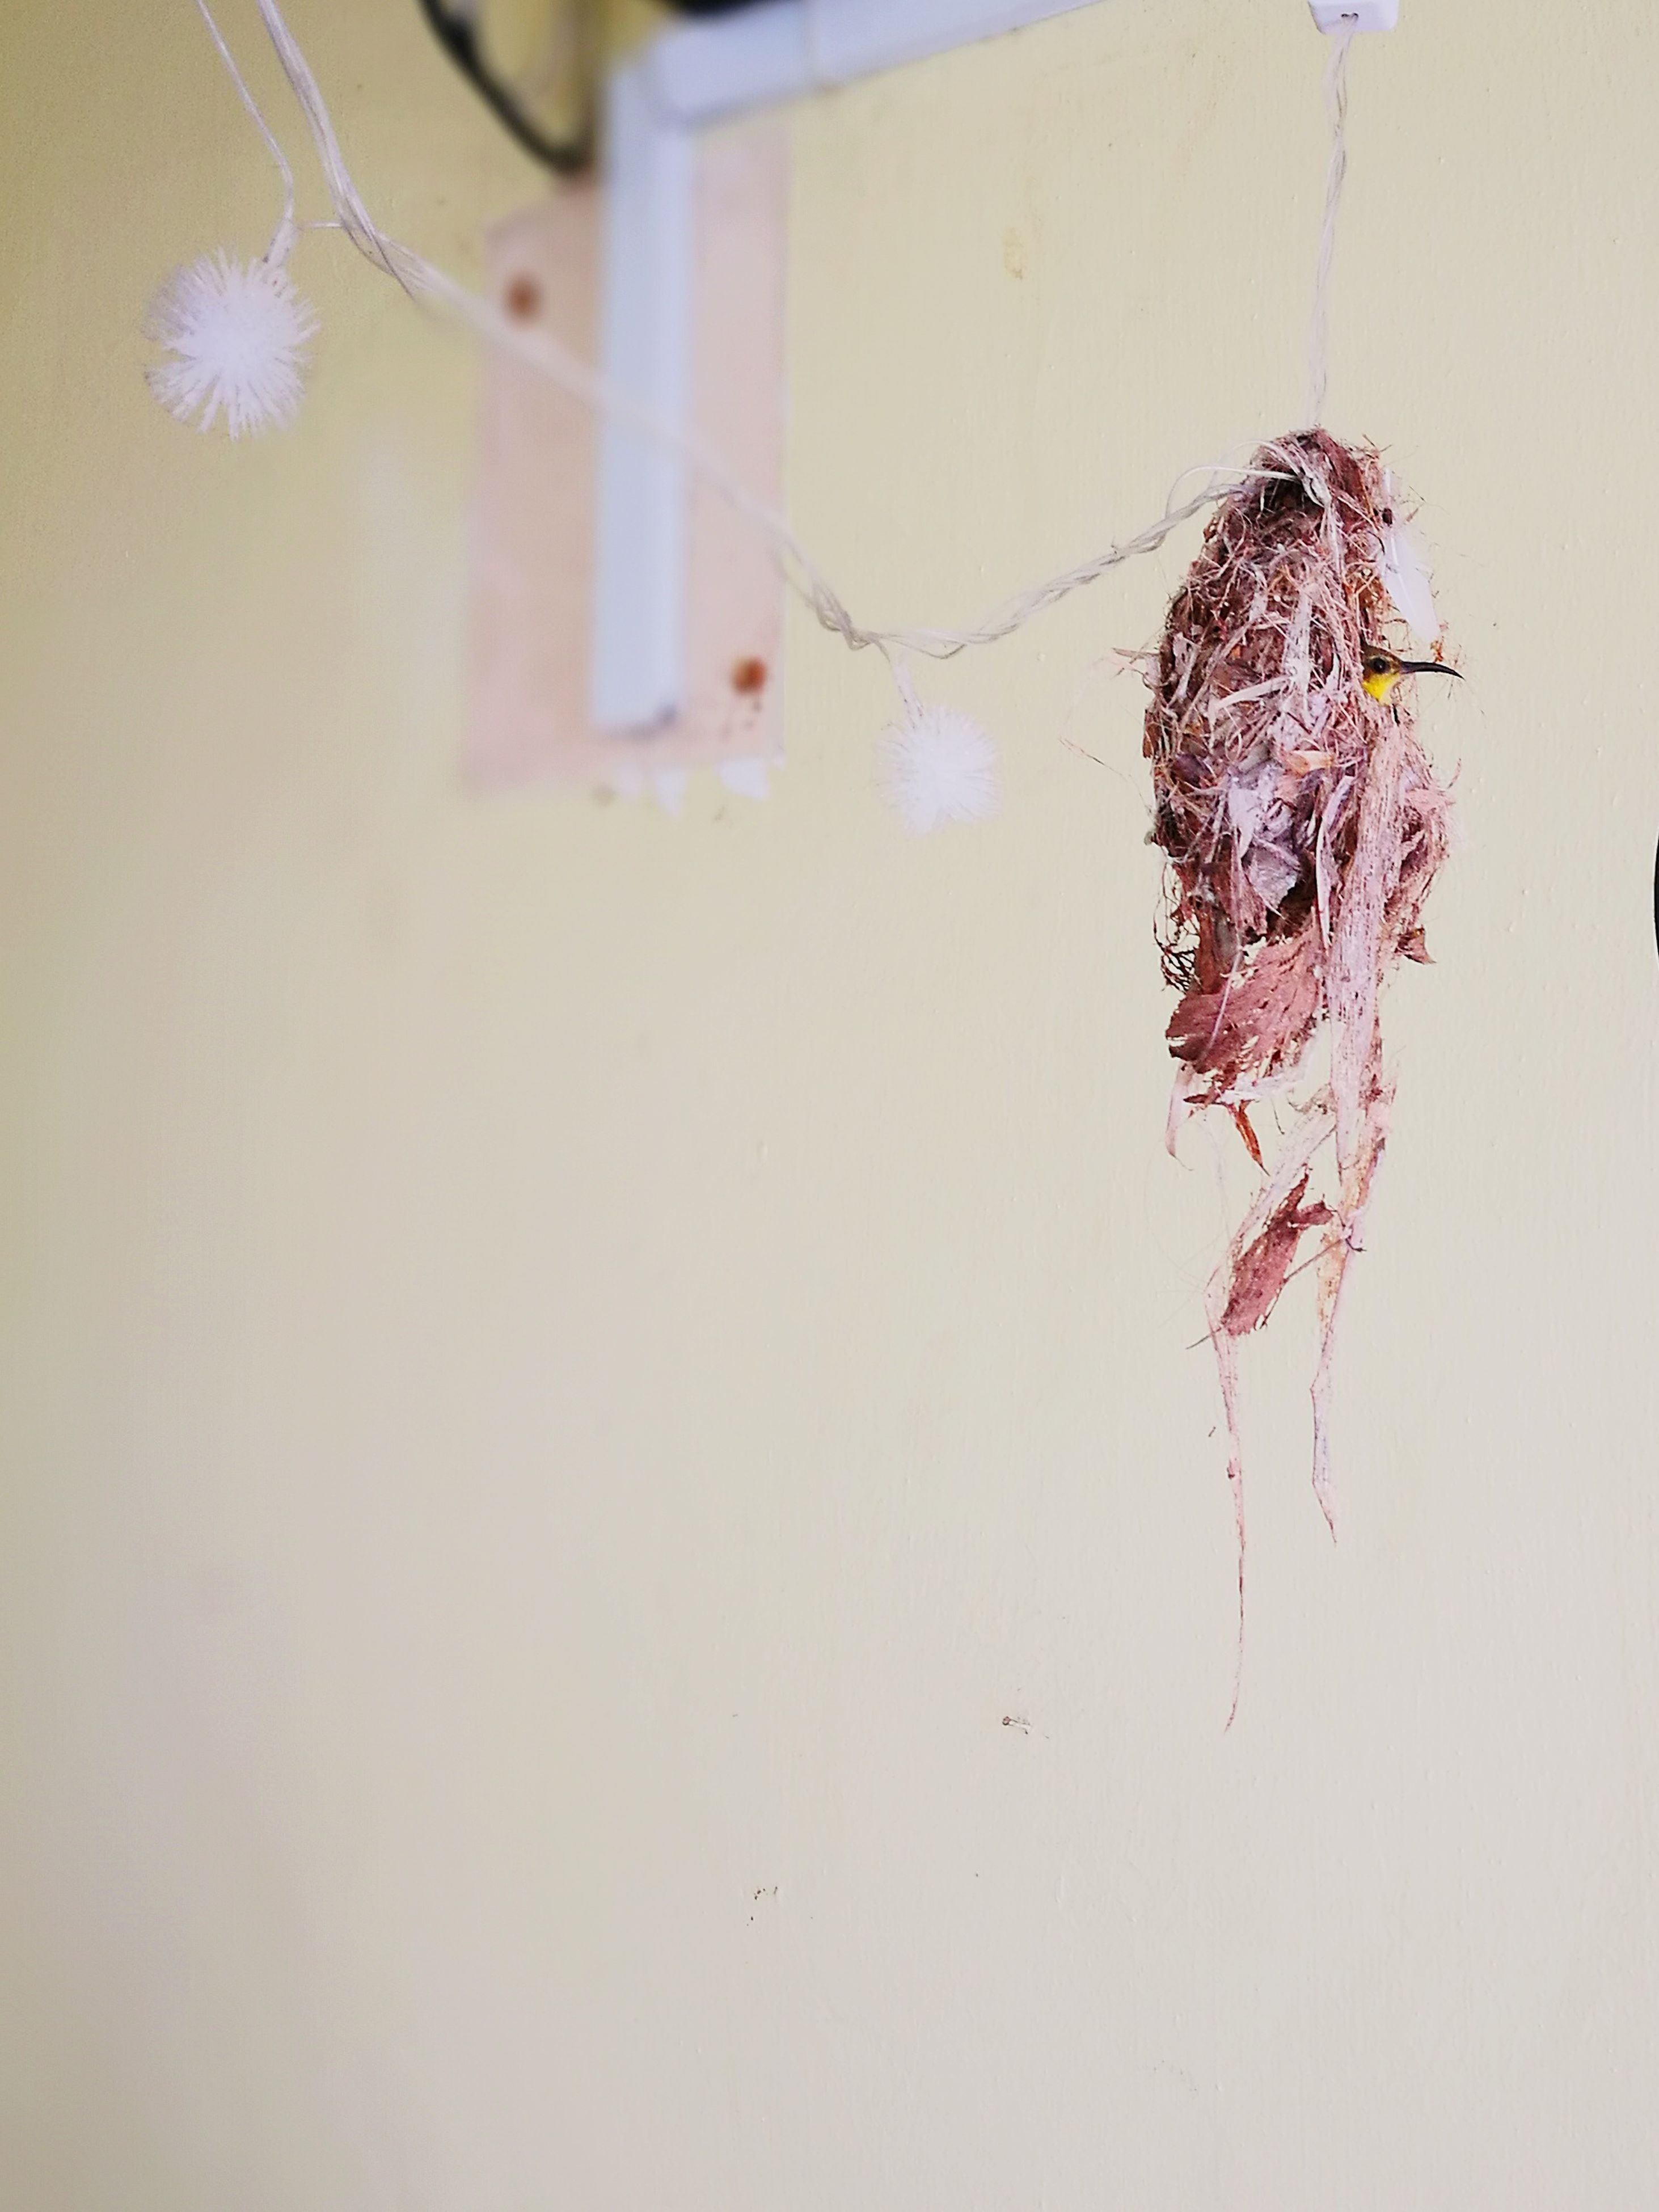 insect, animal themes, one animal, no people, destruction, close-up, indoors, day